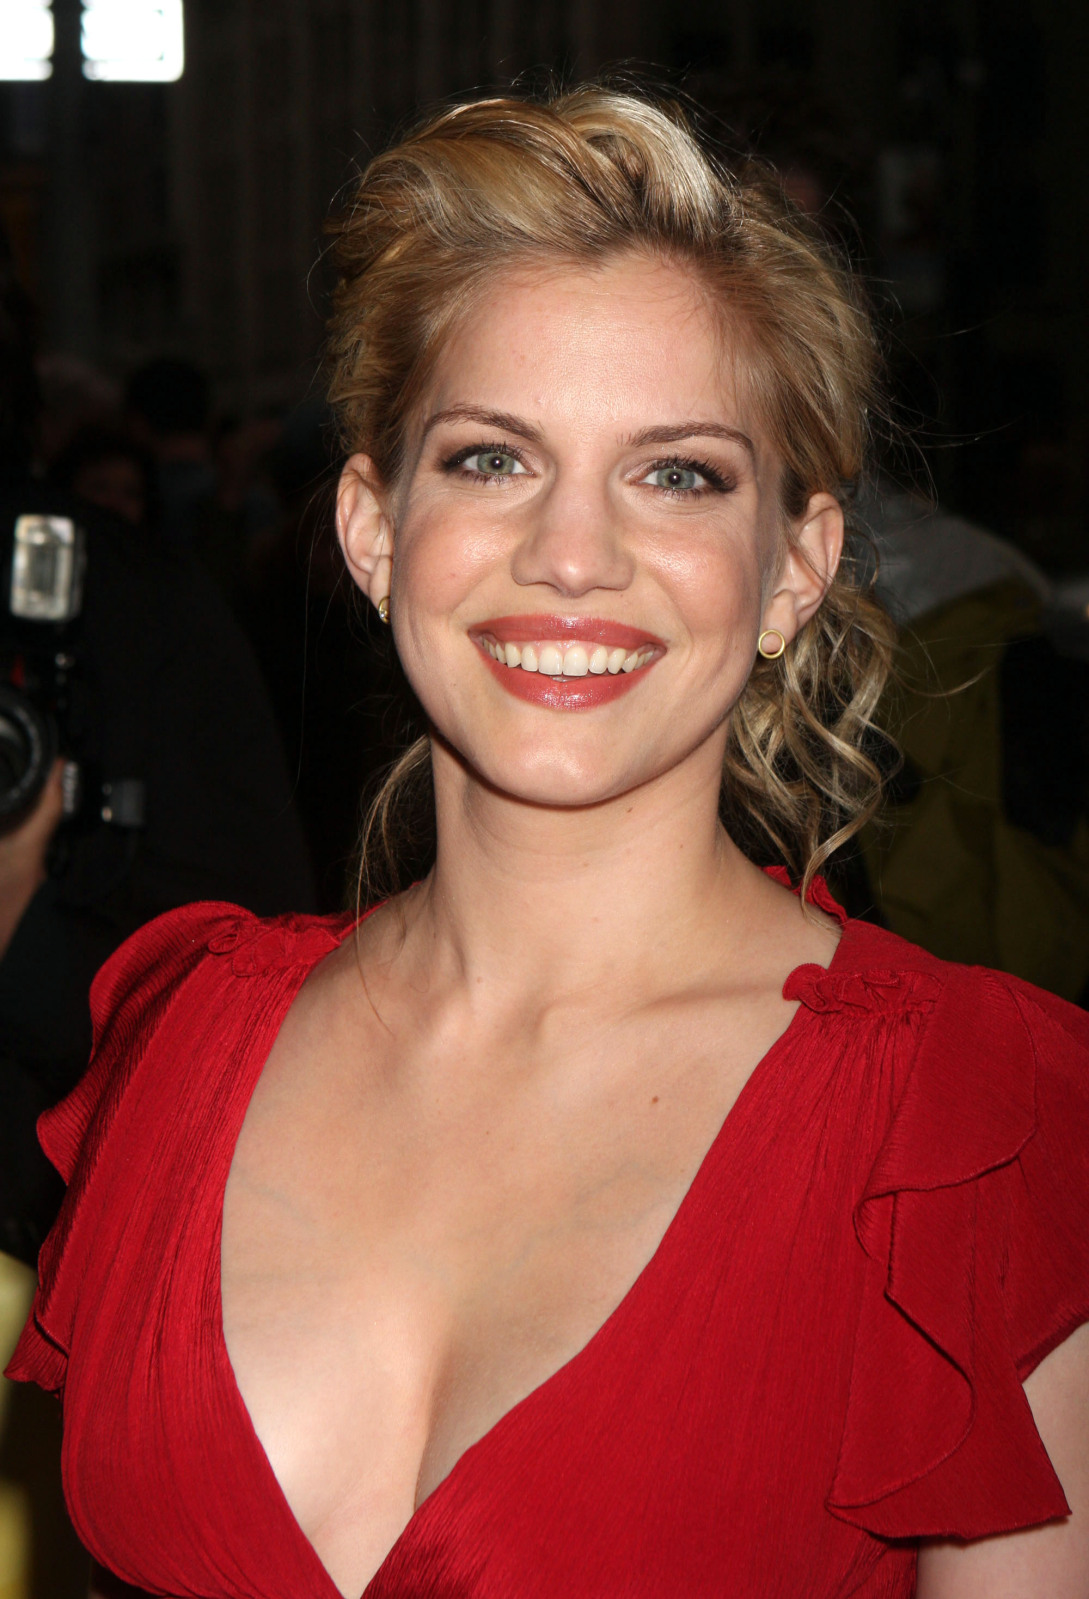 anna chlumsky hannibal wiki fandom powered by wikia. Black Bedroom Furniture Sets. Home Design Ideas